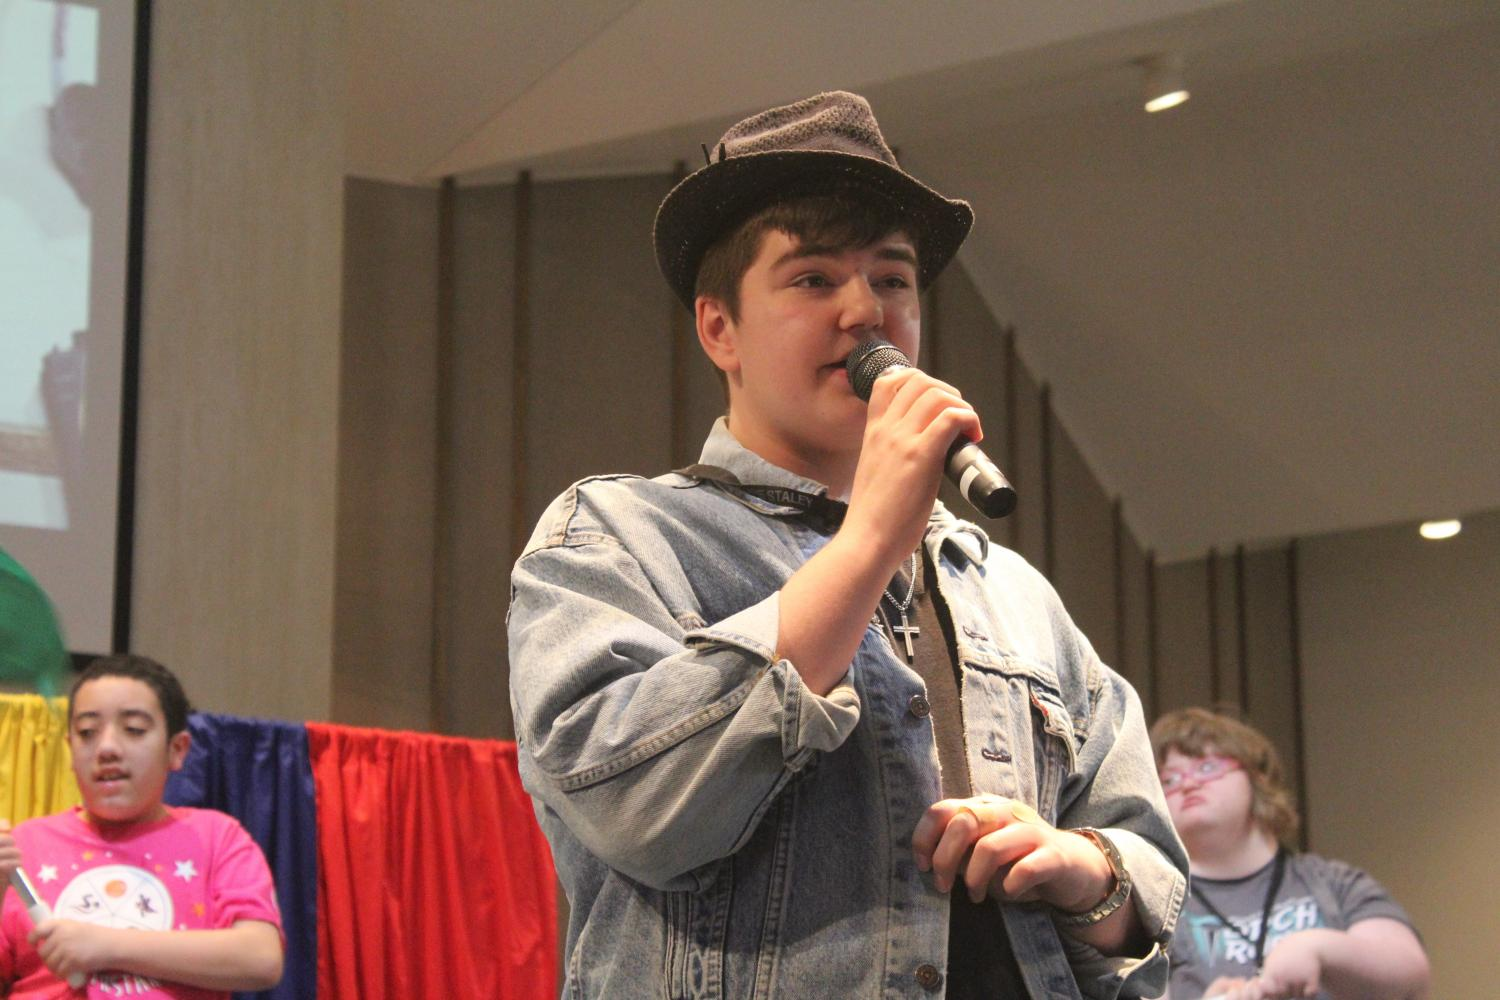 At the Ability Arts Festival performance at North Cross United Methodist Church, sophomore Josh Roush sings lead for on March 9. He said he wore a hat during the performances and picked out his outfit himself.